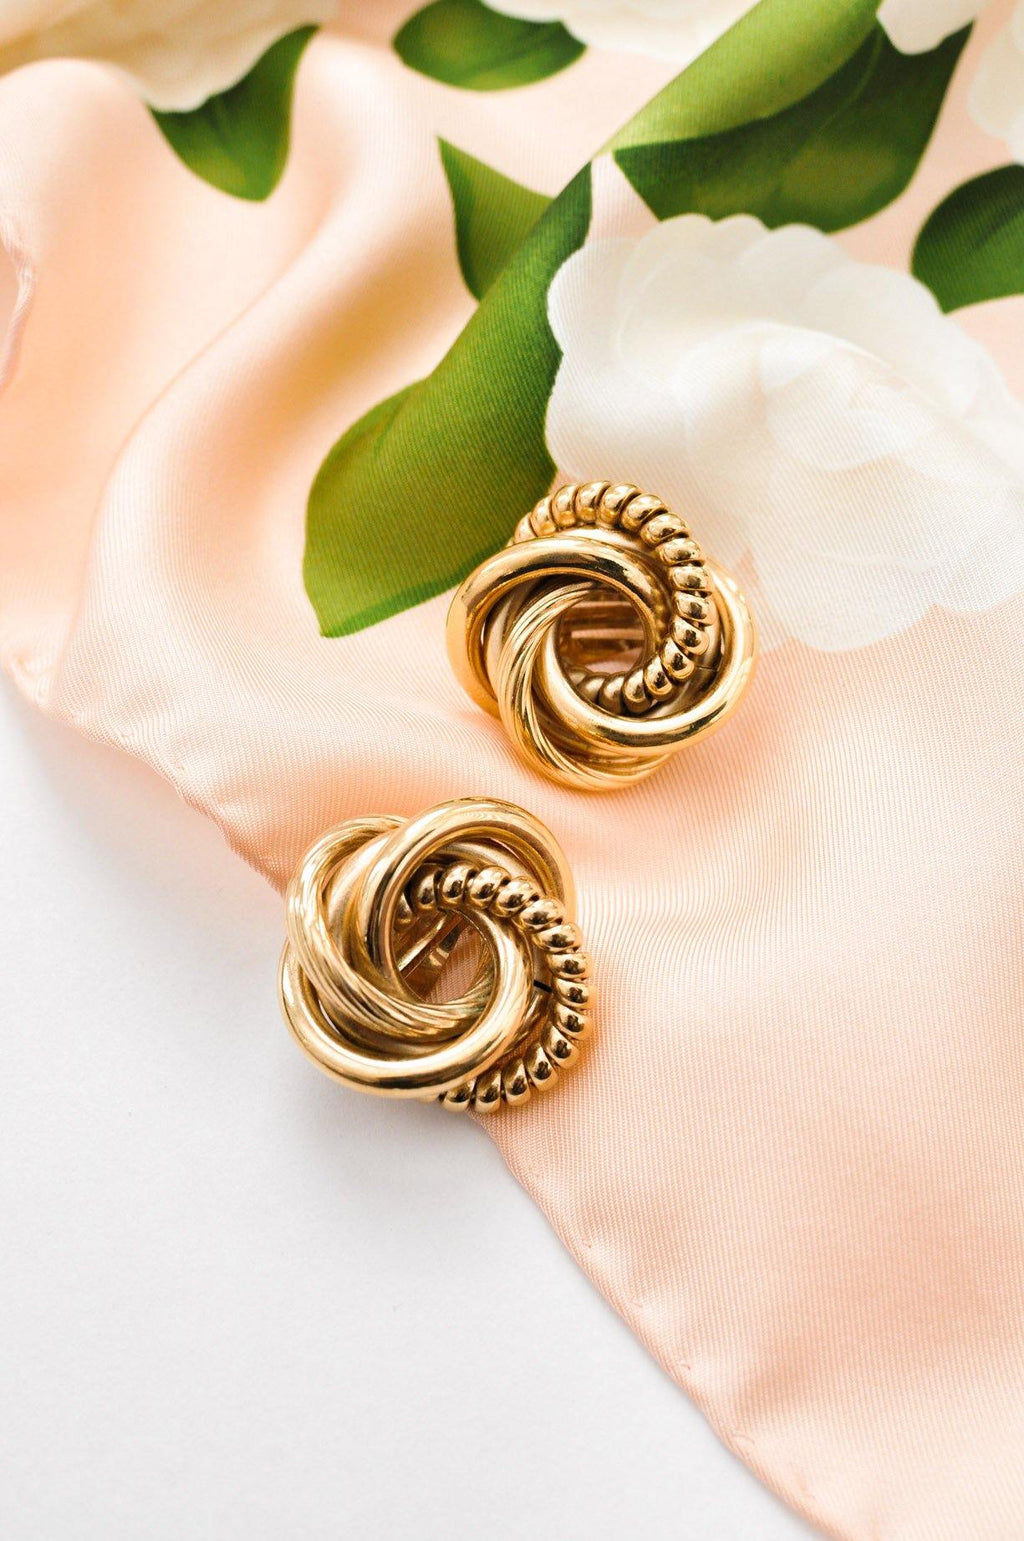 Givenchy Statement Love Knot Clip-on Earrings